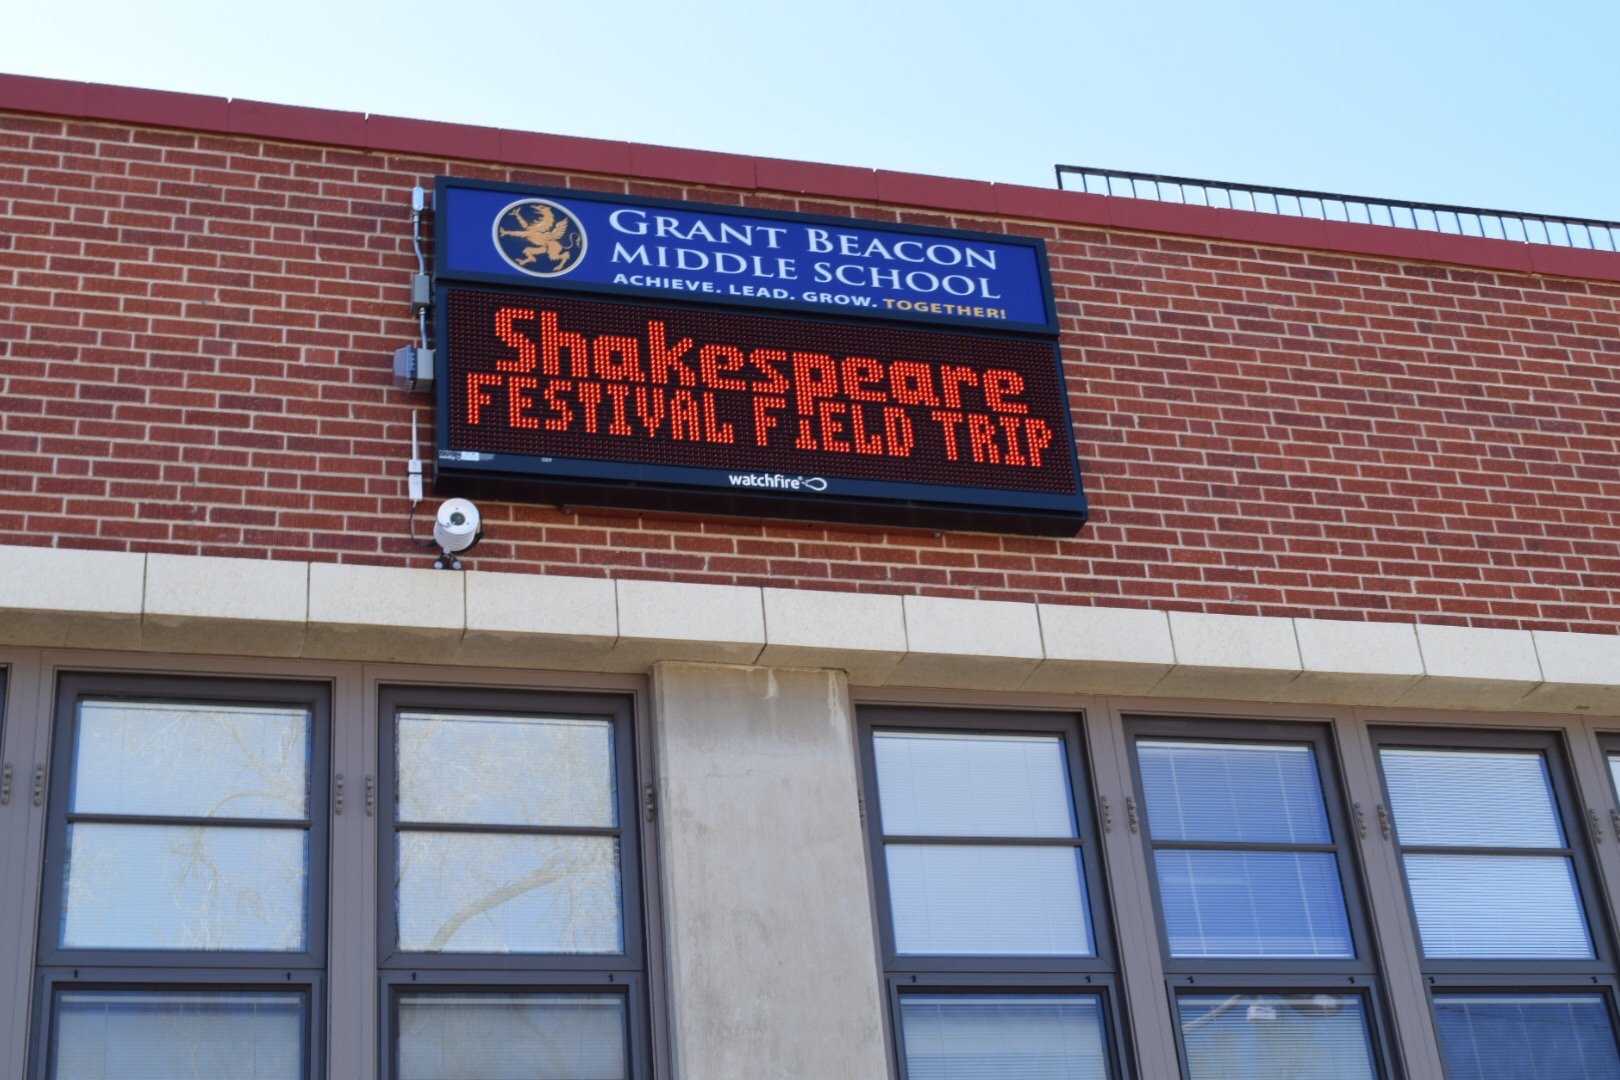 Wall Mounted LED Signs for Schools